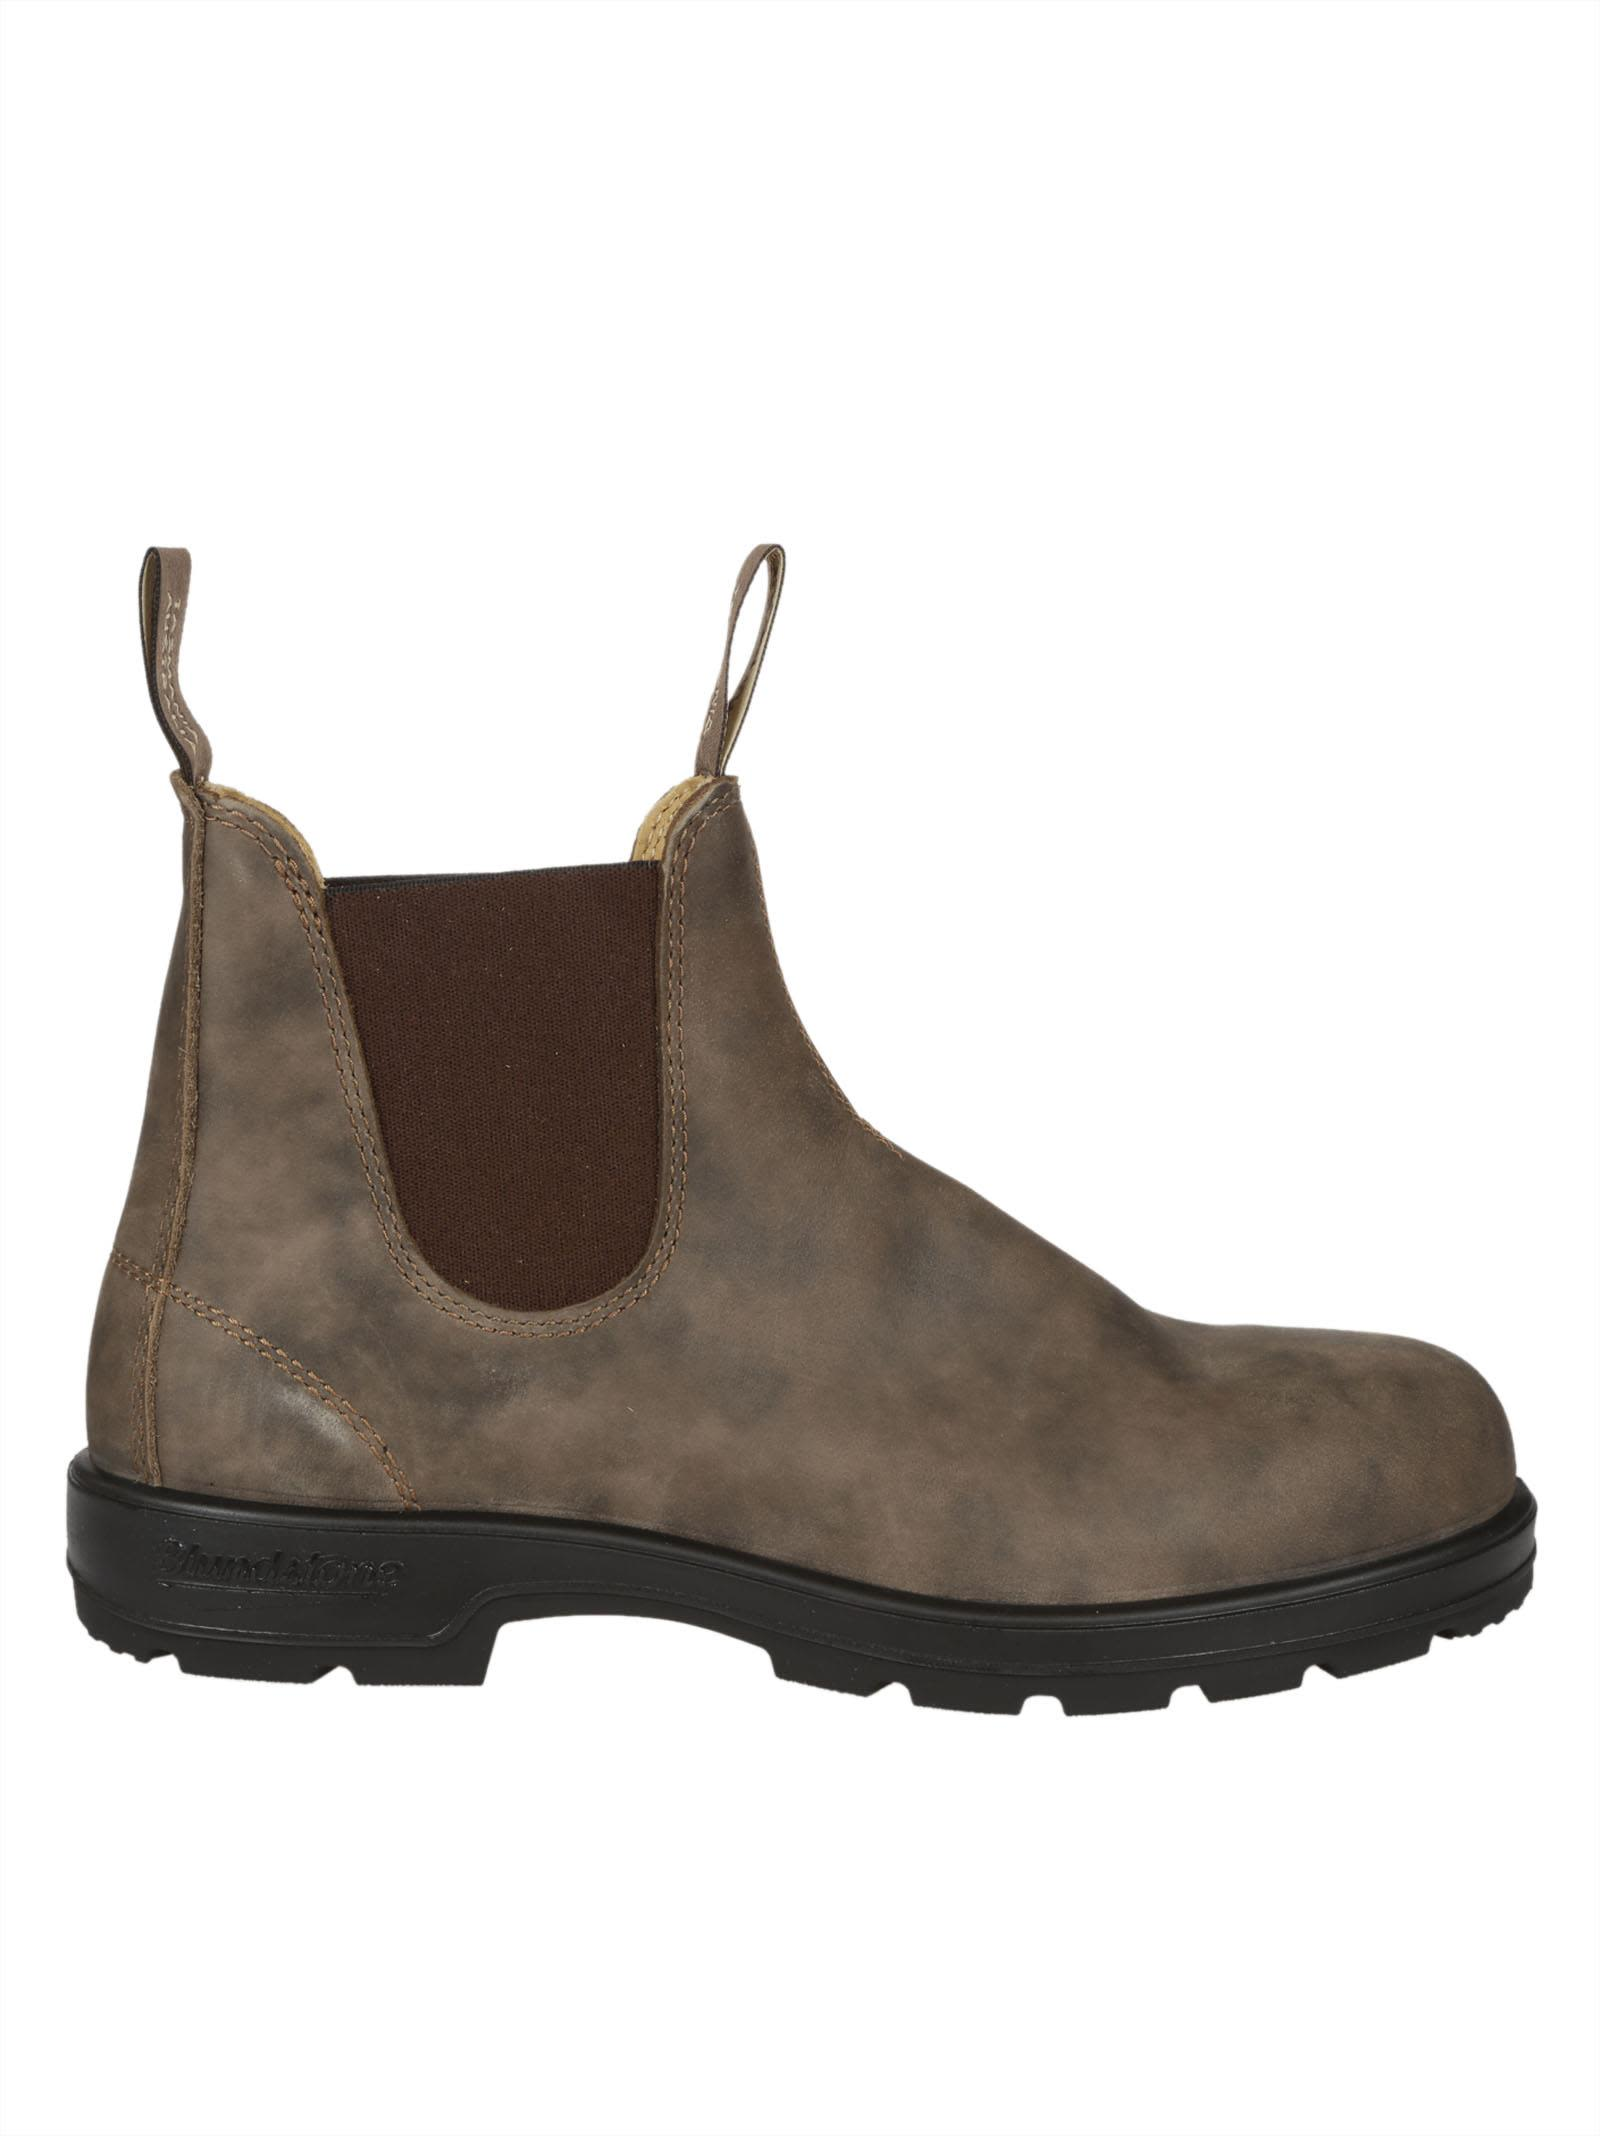 Blundstone Classic ankle boots - grey owXh5